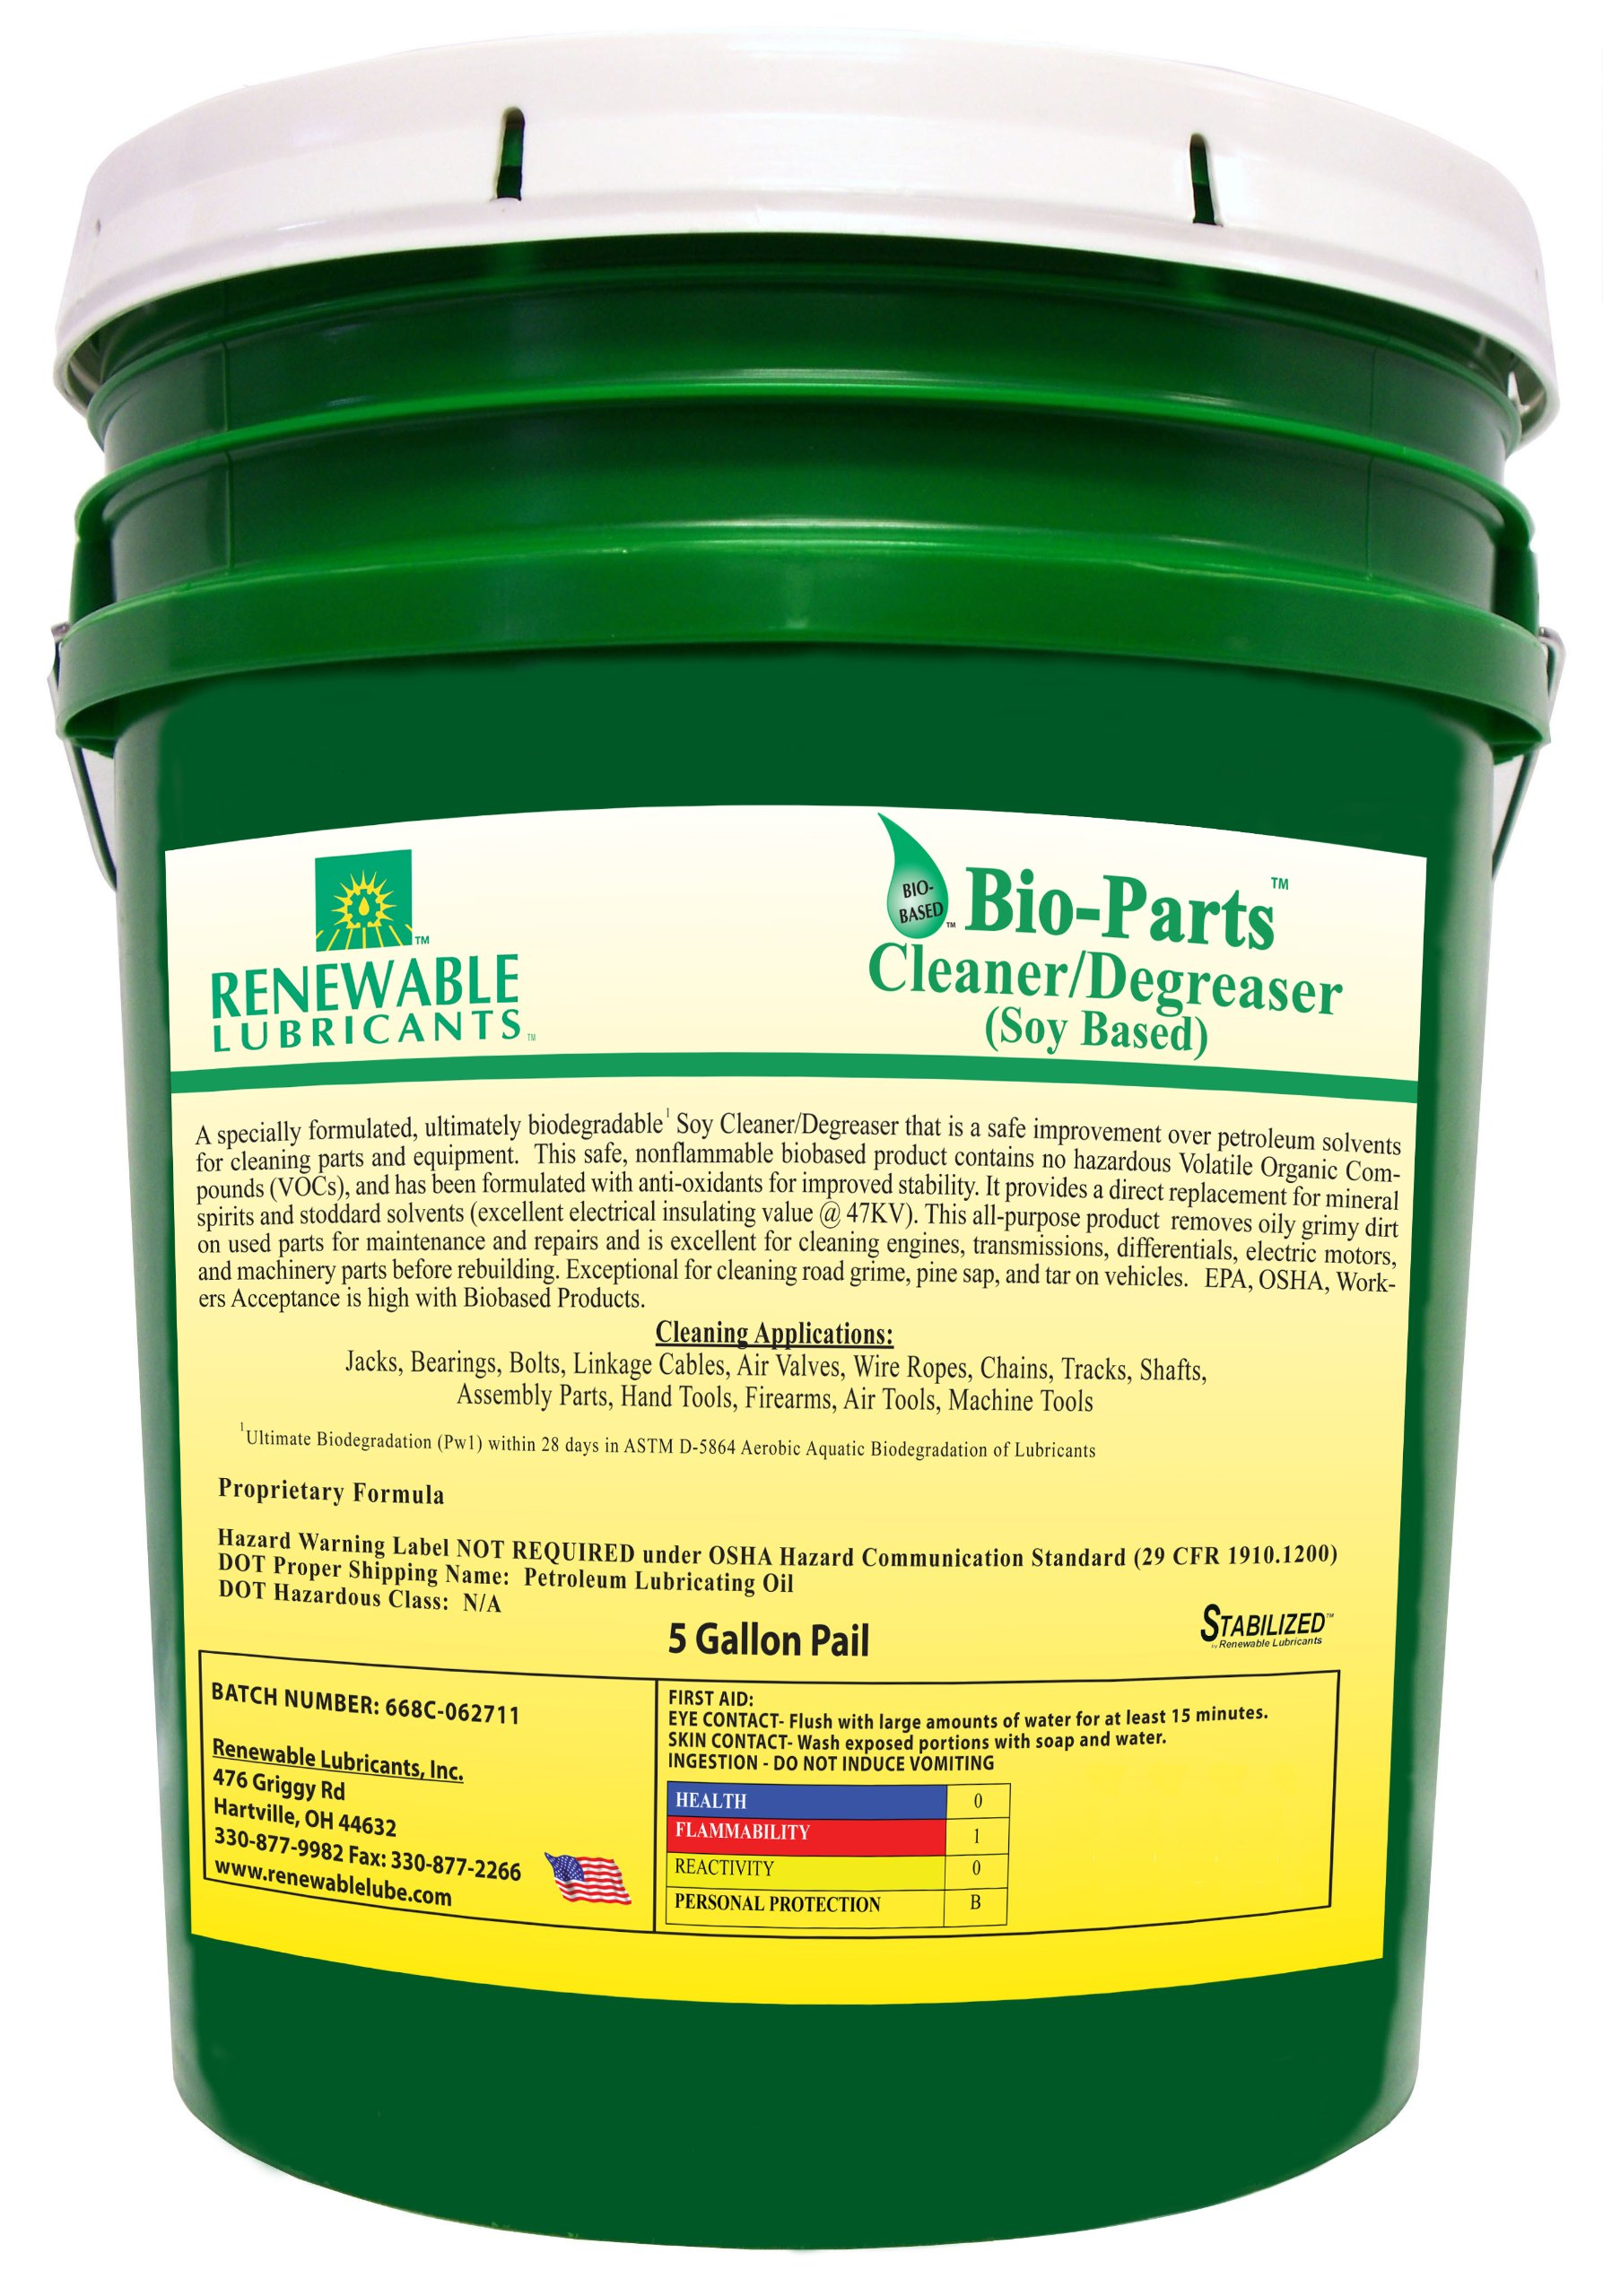 Renewable Lubricants Bio-Parts Soy Cleaner/Degreaser, 5 Gallon Pail